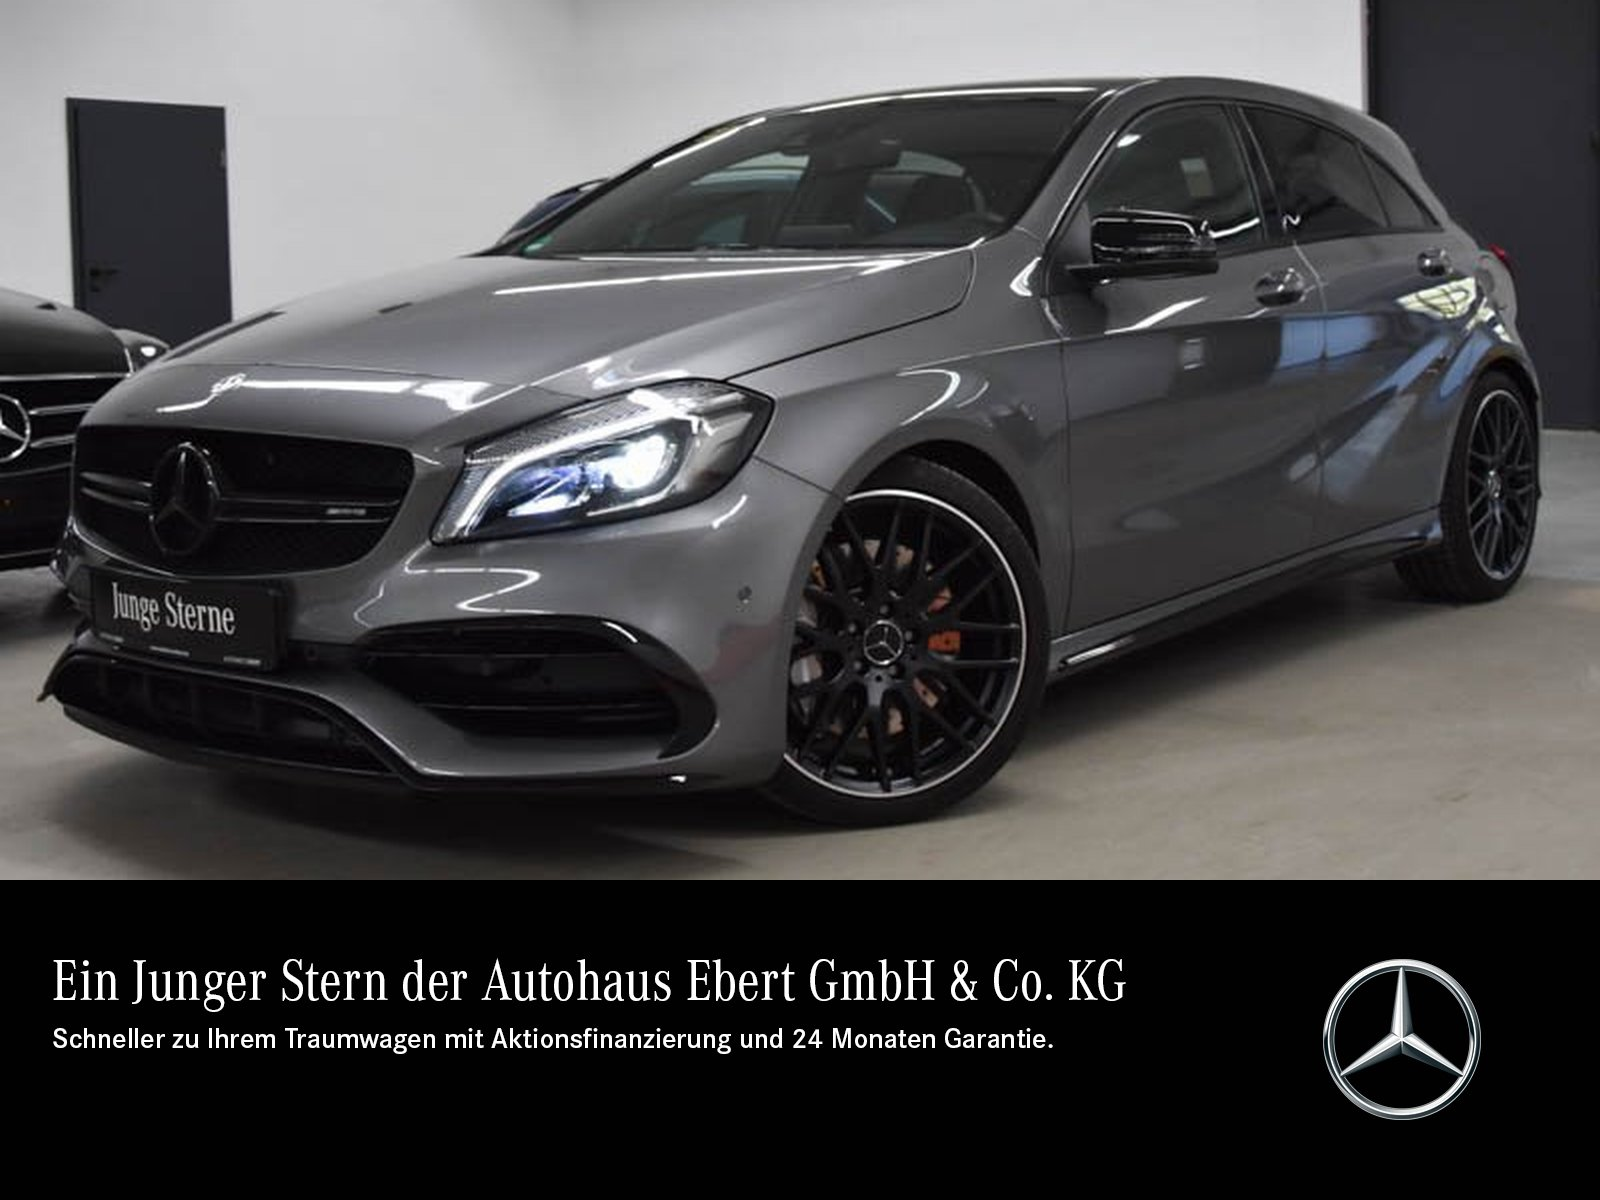 Mercedes-Benz A 45 AMG 4M COMAND+PSD+LED+RFK+NIGHT+PERF. SITZE, Jahr 2018, Benzin